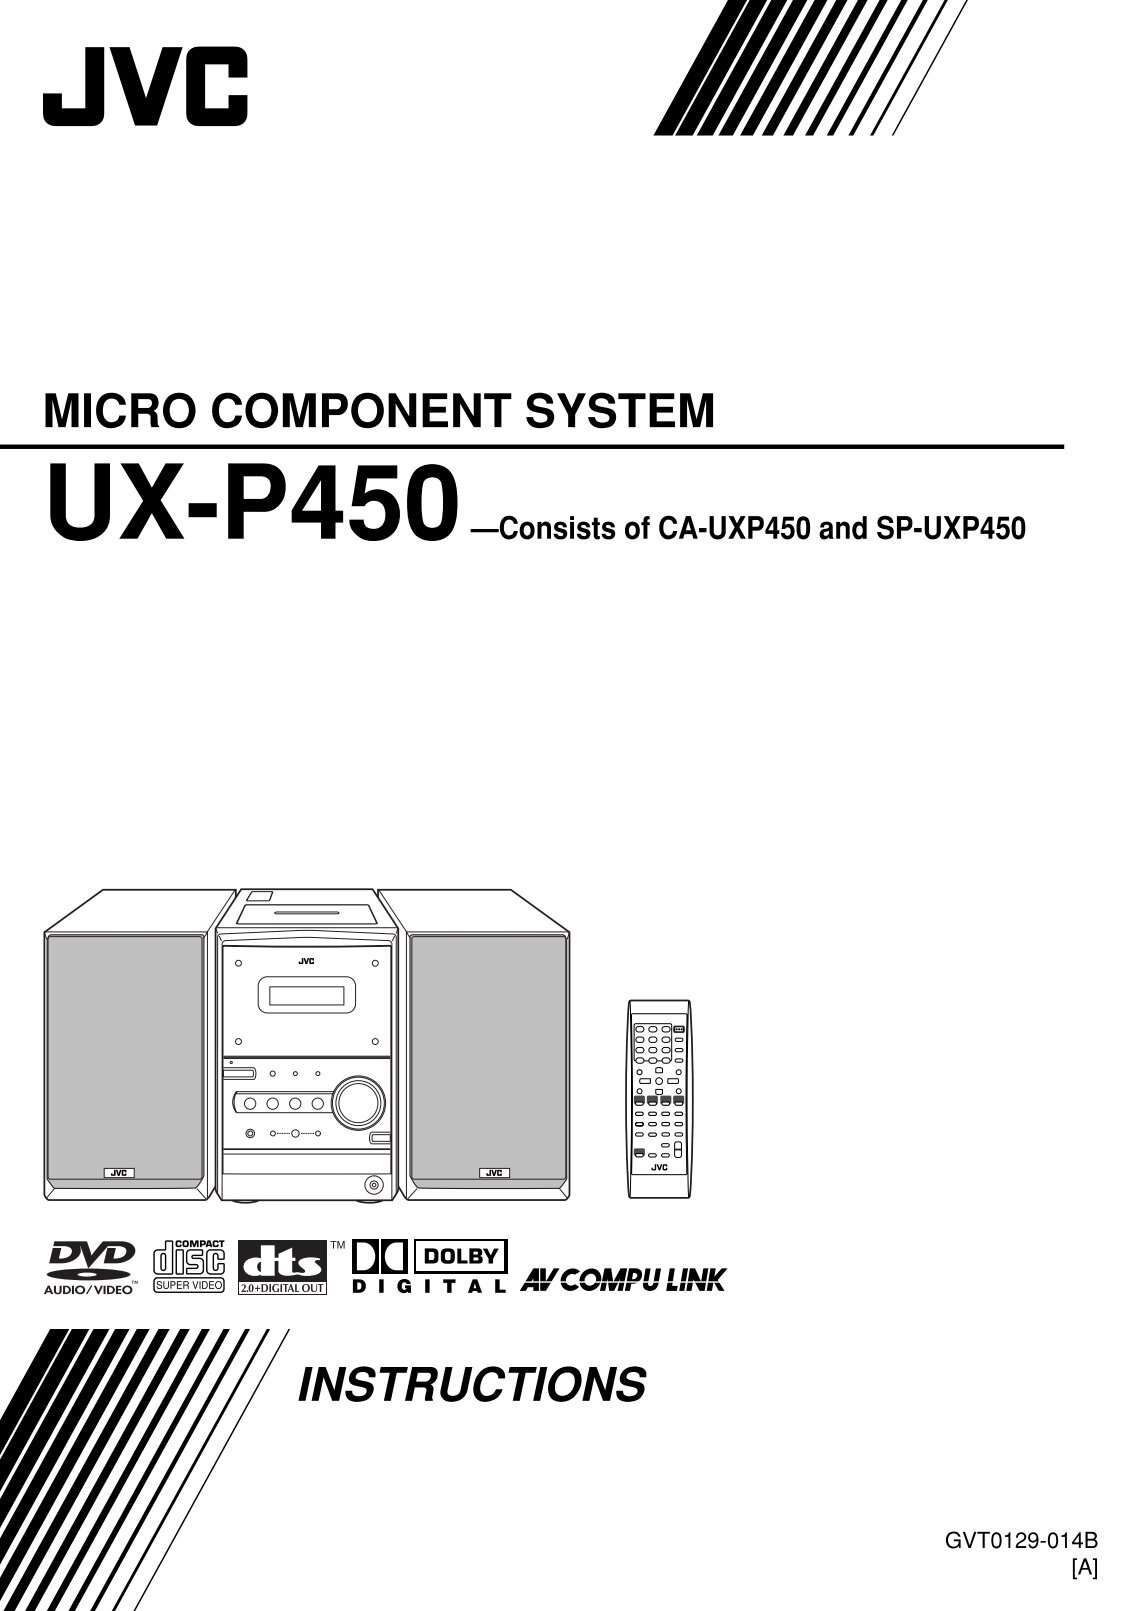 120 Free Magazines From Jvcconz Jvc Kd G220 Wiring Diagram